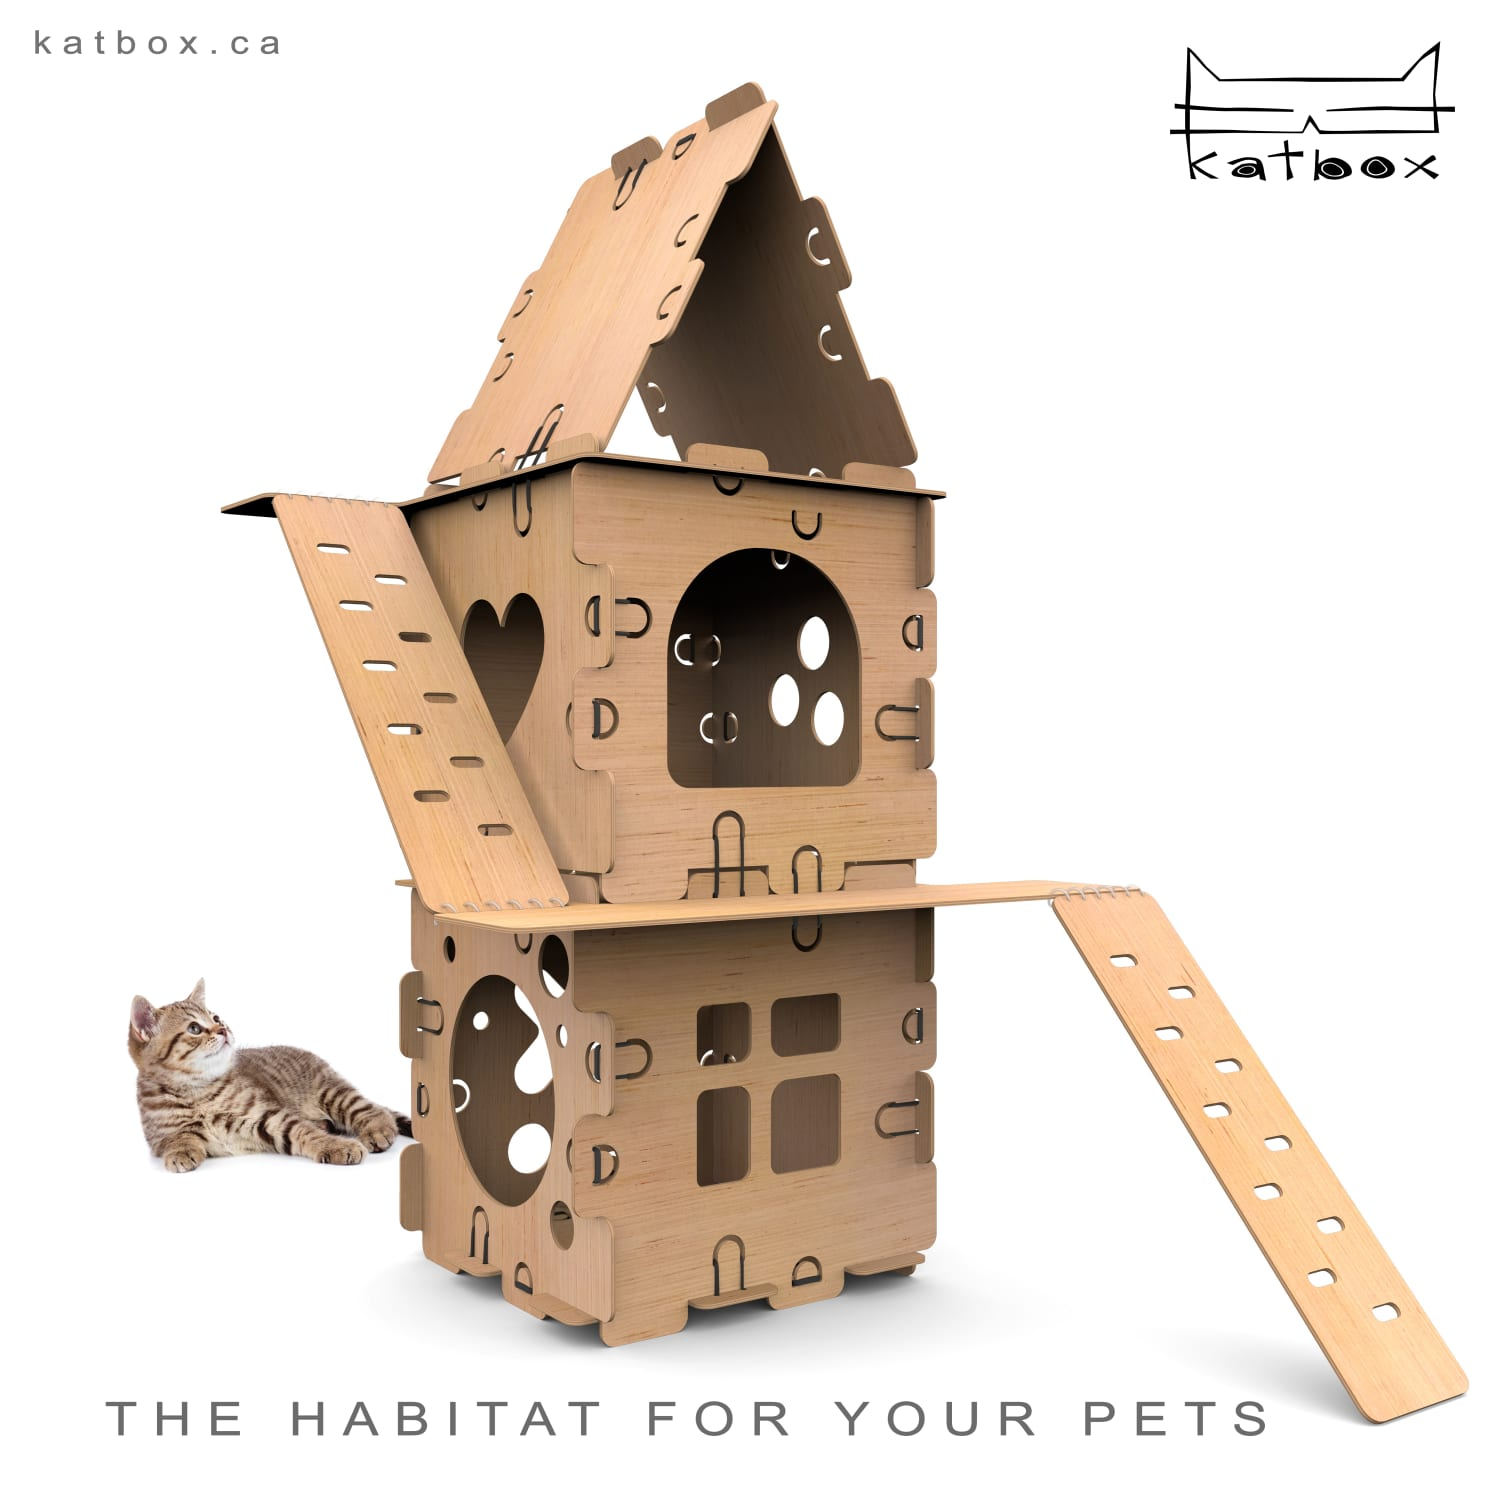 This Modular Cat House Kit Is the Upgraded Cardboard Box Your Pet Has Always Wanted